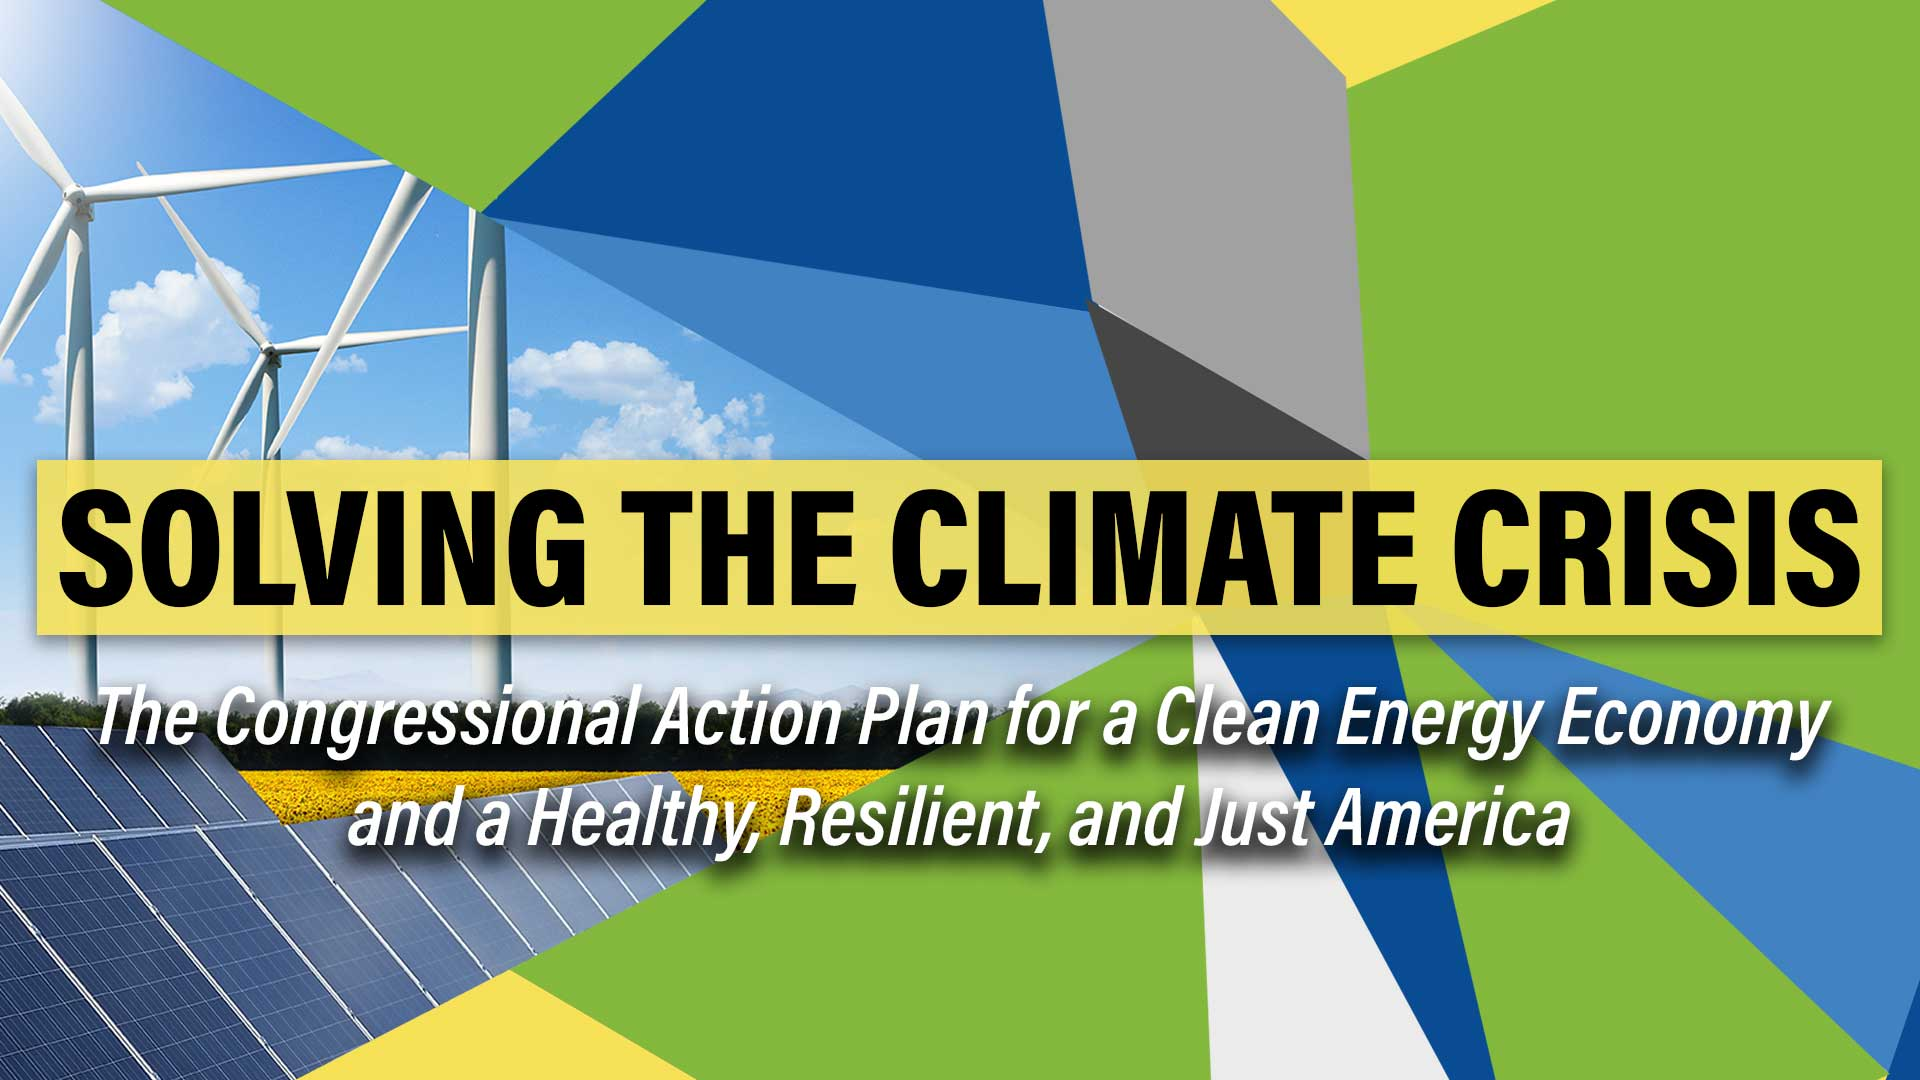 The Congressional Action Plan for a Clean Energy Economy and a Healthy and Just America